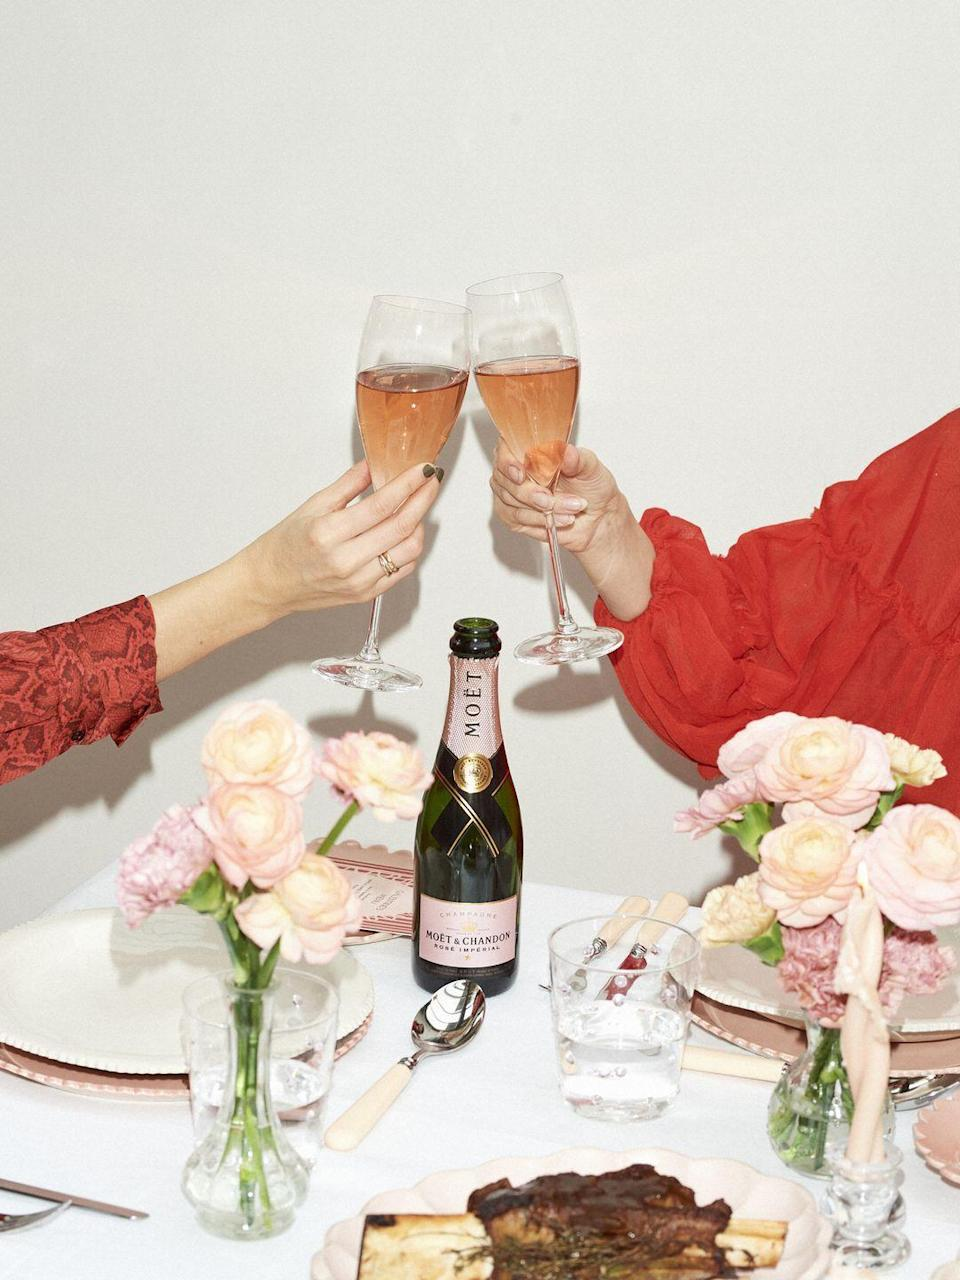 "<p>Laura Jackson has collaborated with Moët & Chandon to create a Galentine's Day box, celebrating the joys of female friendship and partnership. It contains a bottle of Rosé Impérial and a three-course meal of baked camembert, delicious beef short ribs from HG Walter or a hearty vegetarian wellington with celeriac, dauphinoise potatoes and buttered winter greens from the Covent Garden vegetable market – followed by Jackson's take on Eton Mess, with toasted hazelnuts and berry compote. Each box will also include a Pink Blossom Love candle by Wax Atelier; bespoke menus designed by Romeo + Jules Studio; and recipes to create two Moët & Chandon cocktails. </p><p>£55, Hoste x Moët & Chandon. Each box will be delivered before 13 February.</p><p><a class=""link rapid-noclick-resp"" href=""https://www.restaurantkitsuk.com/#/restaurant-landing-page"" rel=""nofollow noopener"" target=""_blank"" data-ylk=""slk:SHOP NOW"">SHOP NOW</a><br></p>"